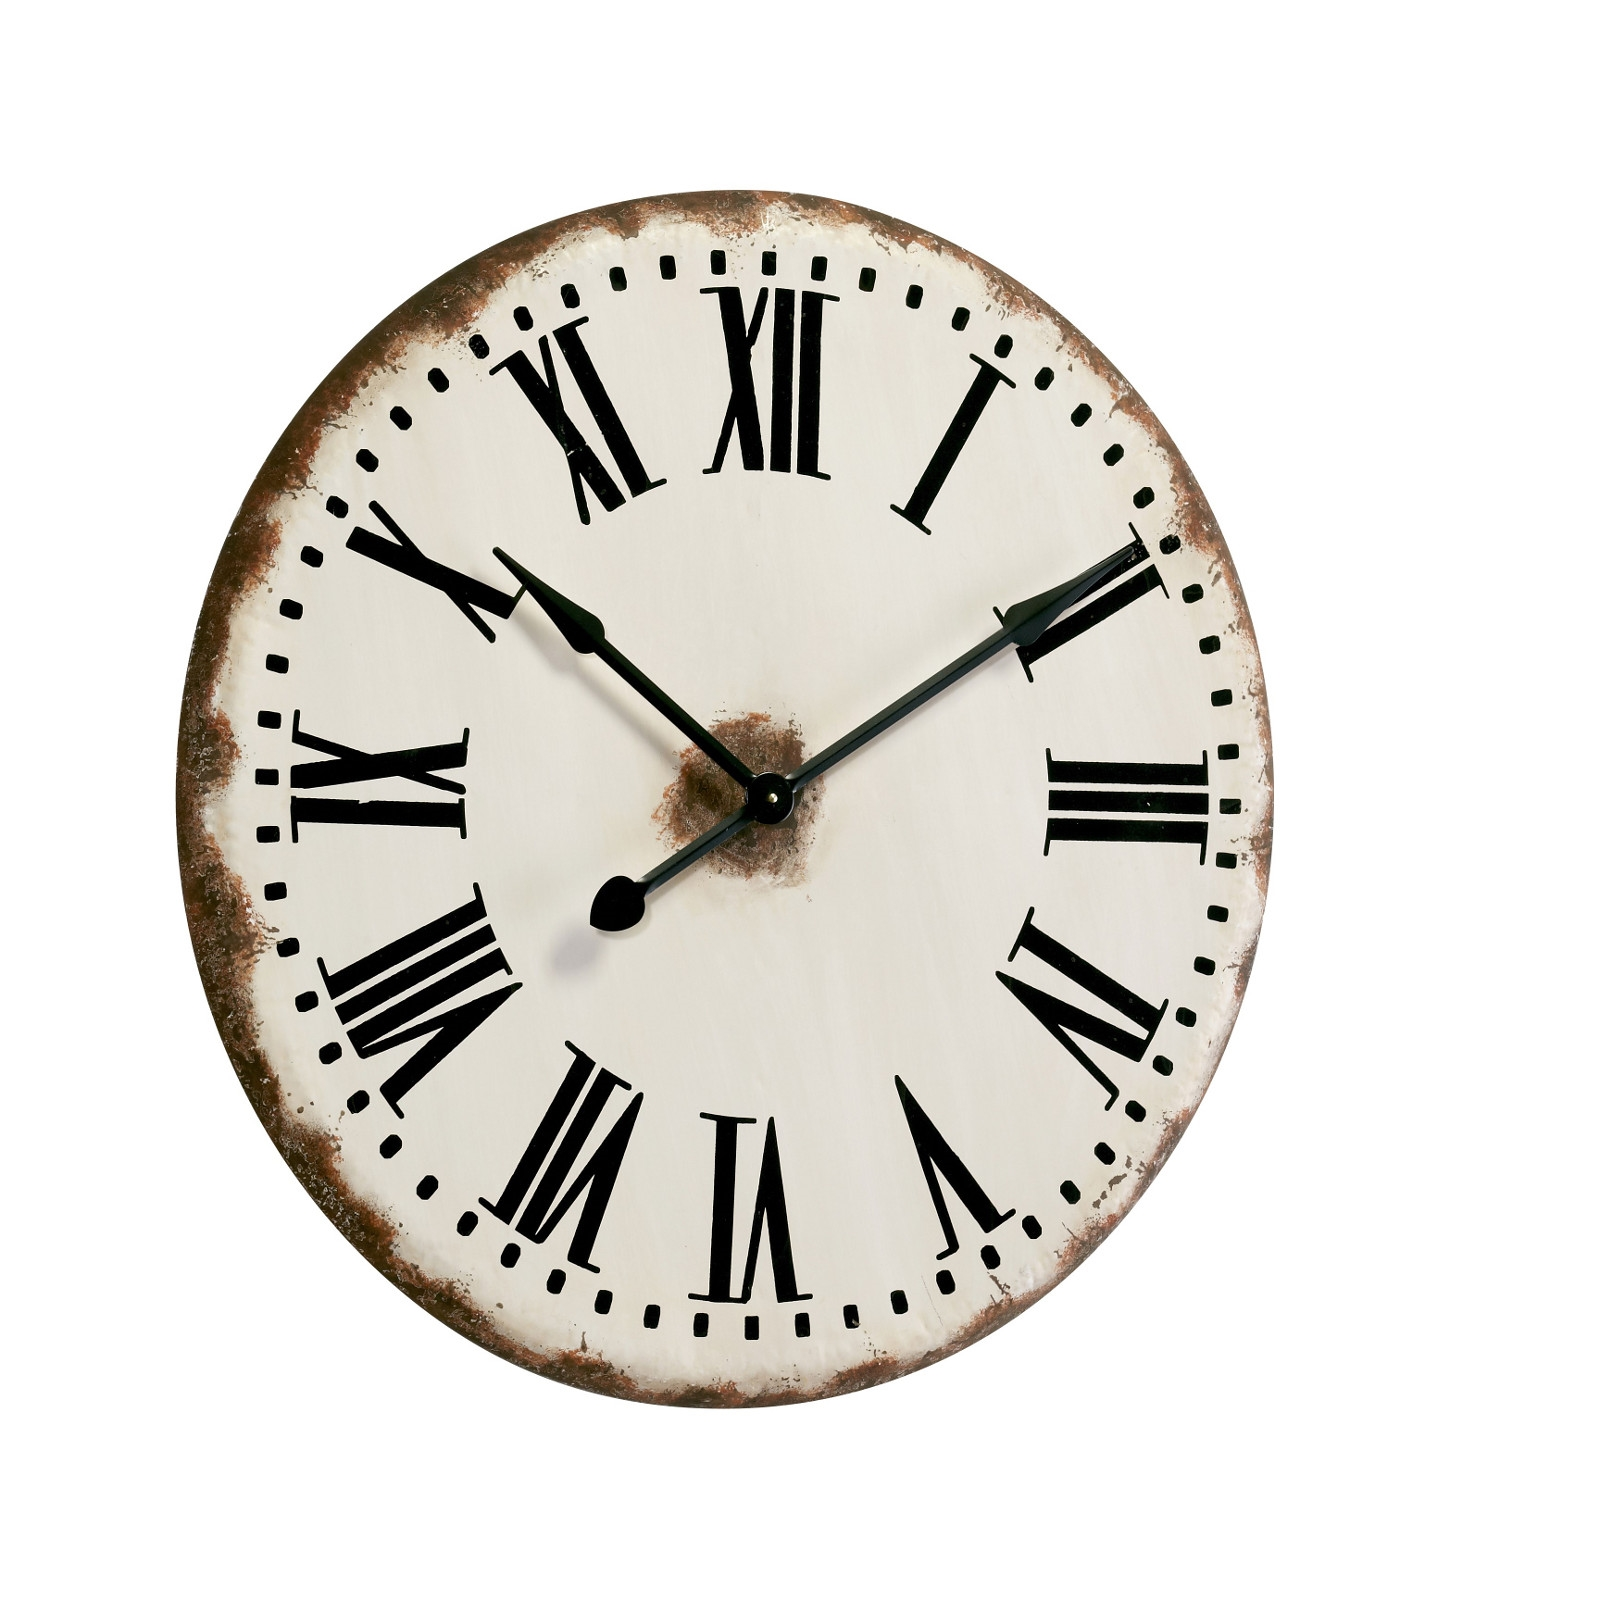 Vintage design metal train station clock o82cm wall for Train station style wall clock